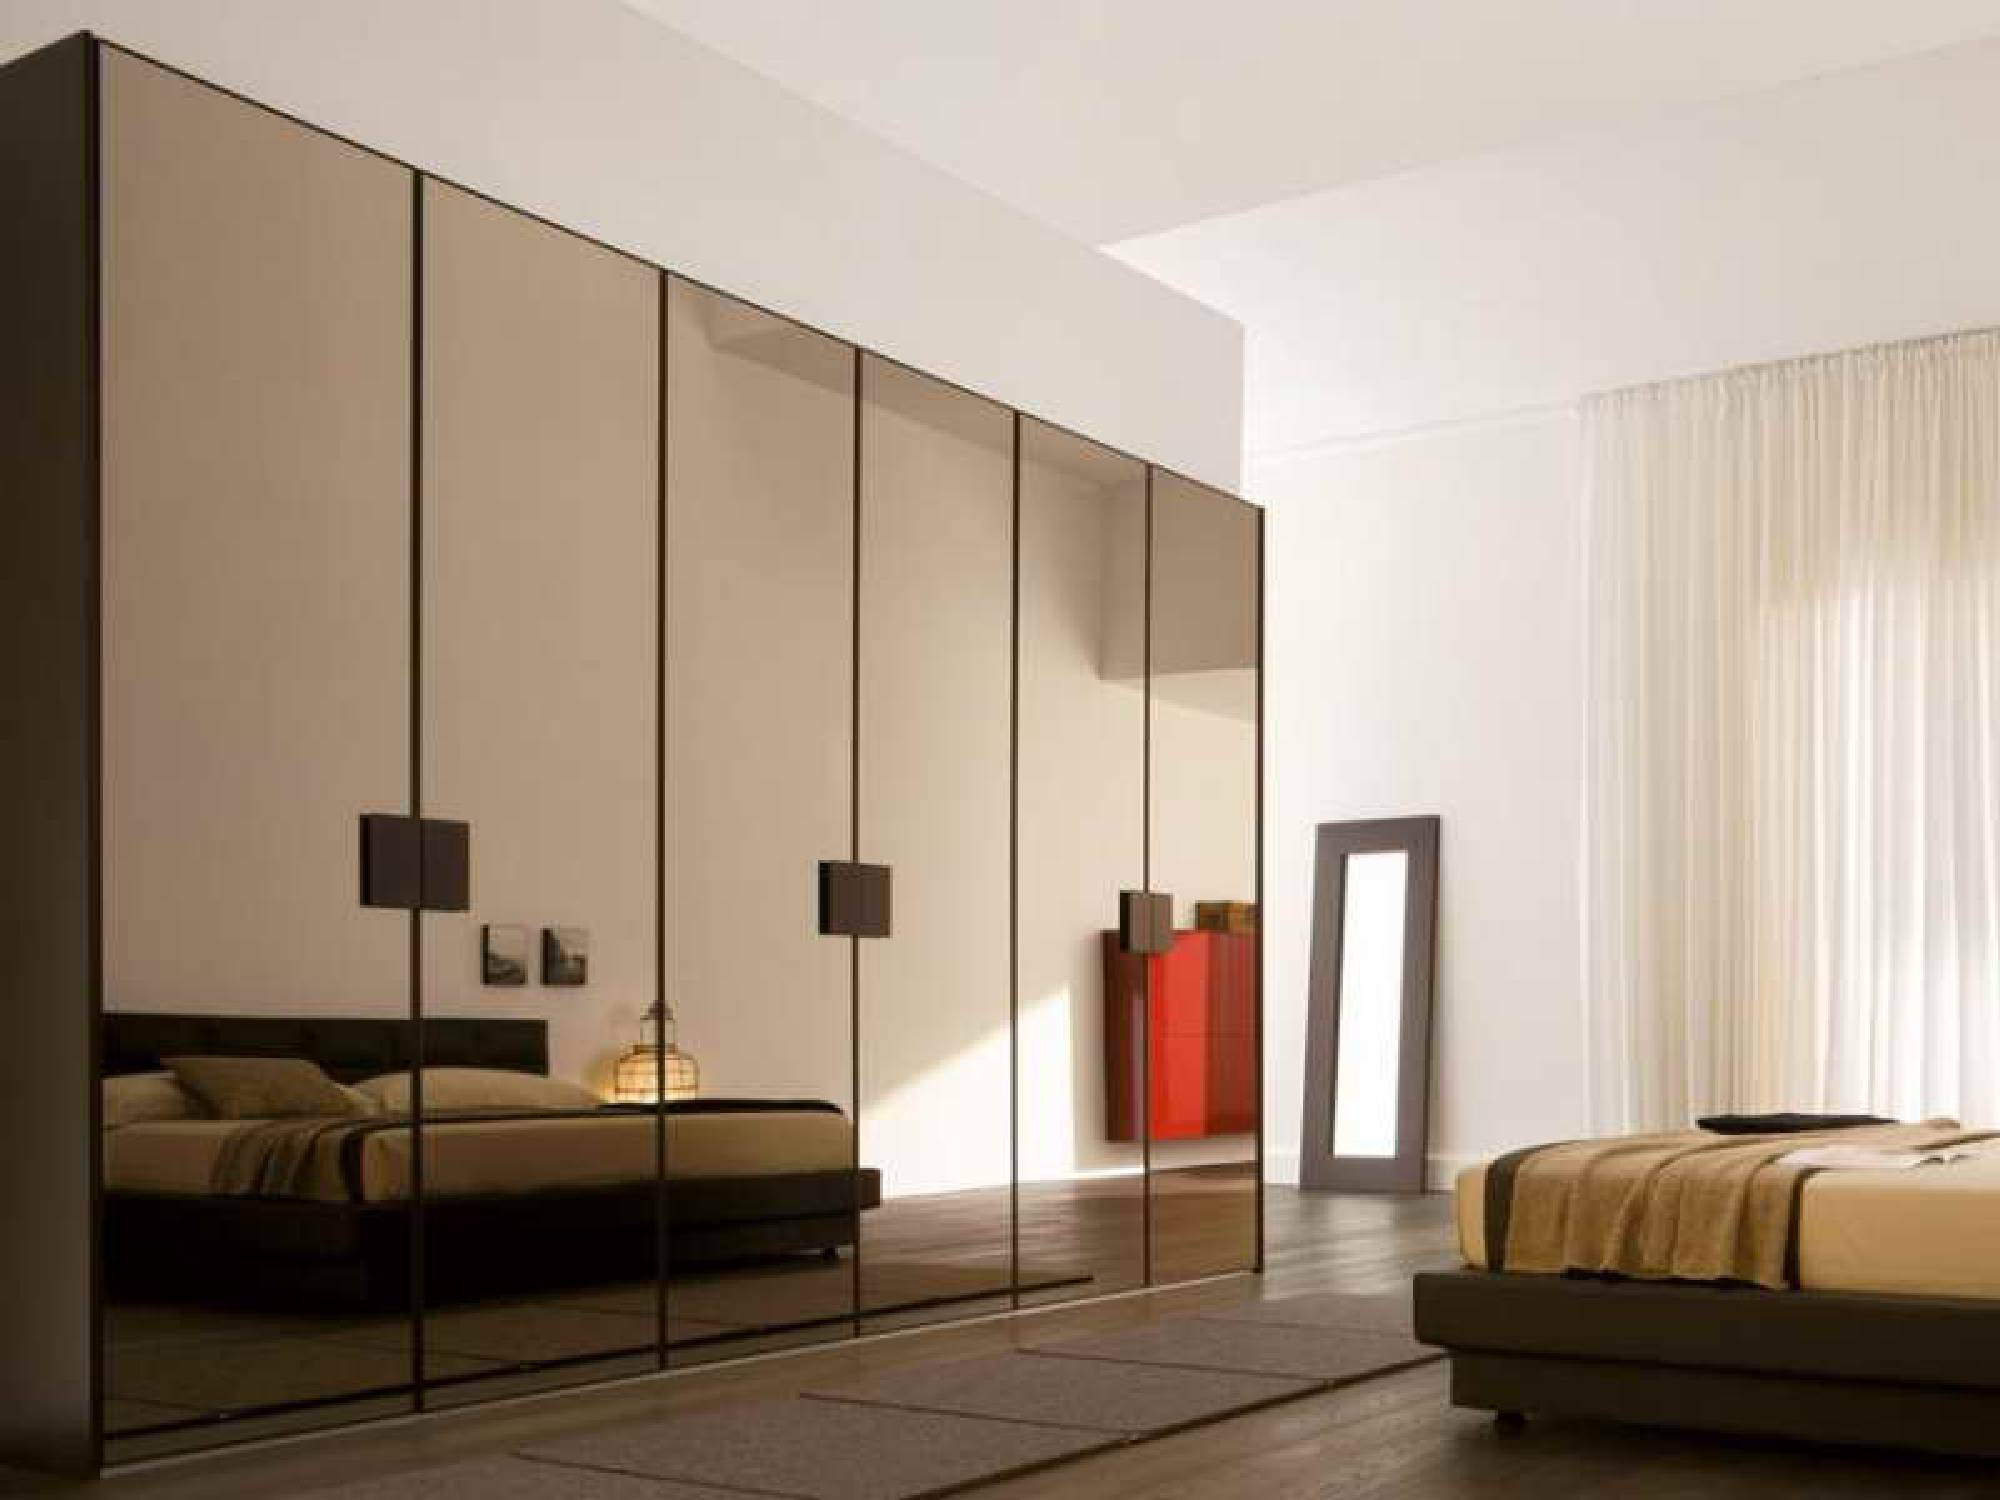 Design in gurgaon wooden florring in gurgaon bathroom vanity gurgaon - Modular Wardrobe Fascinating Bedroom Interior Decoration Ideas With Latest Wardrobe Designs External Brown Mirror